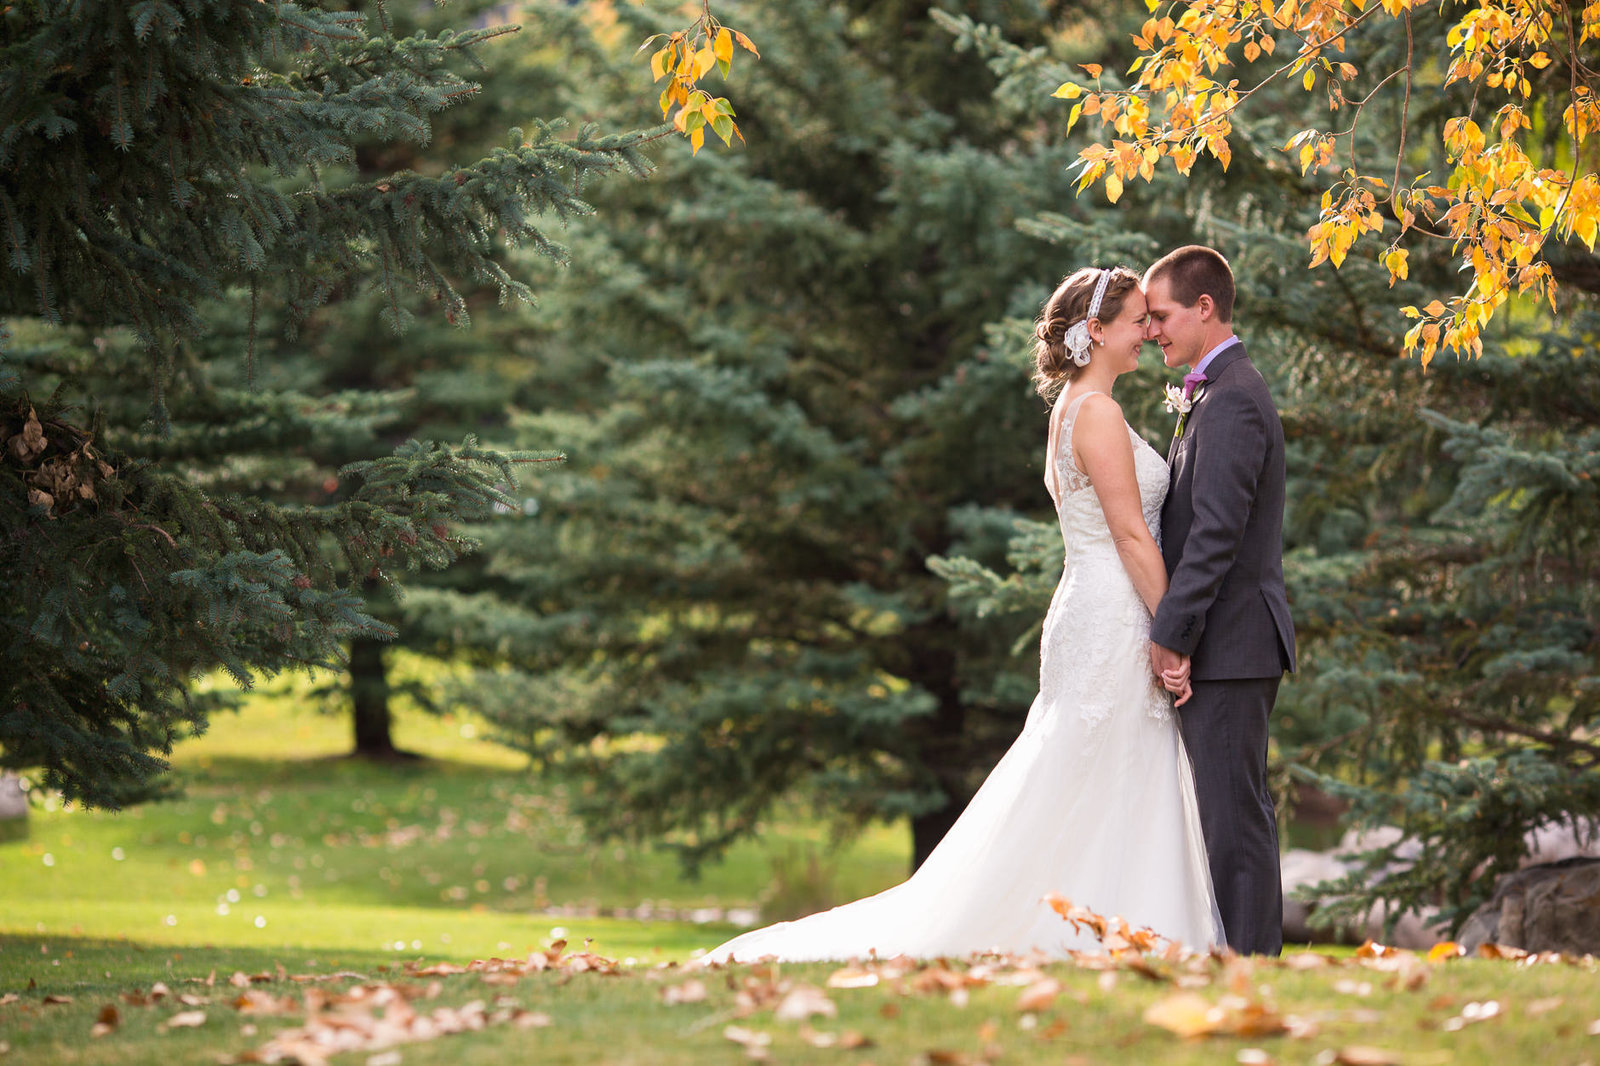 alice-che-photography-eagle-vail-pavilion-wedding-bride-and-groom-holding-hands-under-trees